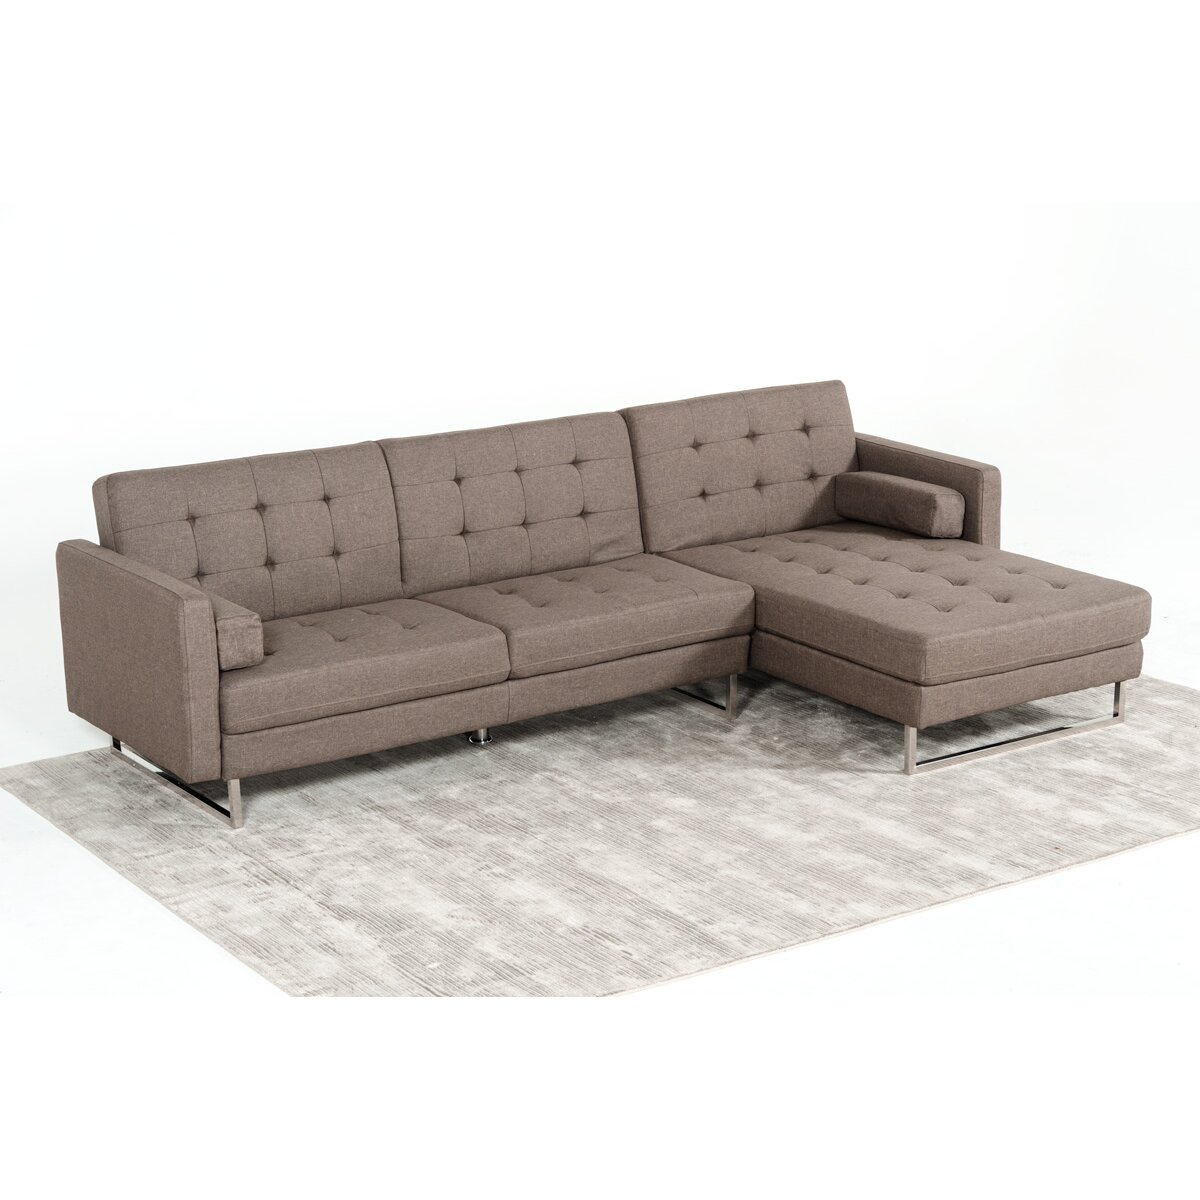 Most comfortable sectional sofa - Alsatia Sleeper Sectional